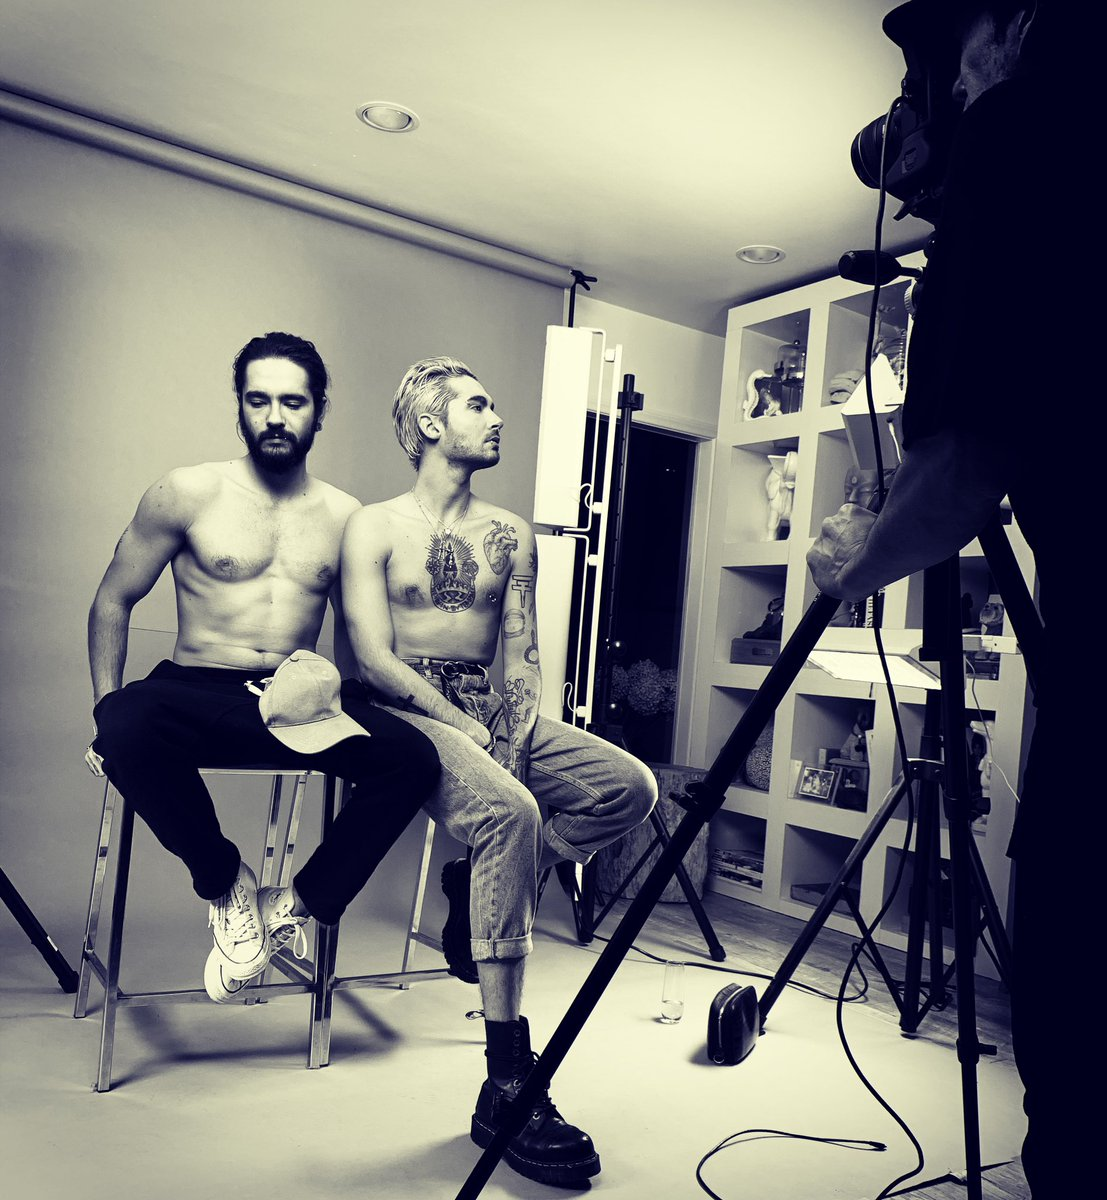 Late night photoshoot with @shirogutzie  @tokiohotel @billkaulitz @tomkaulitz ????????????????#melancolicparadise #February1 https://t.co/N9c8uYjytN